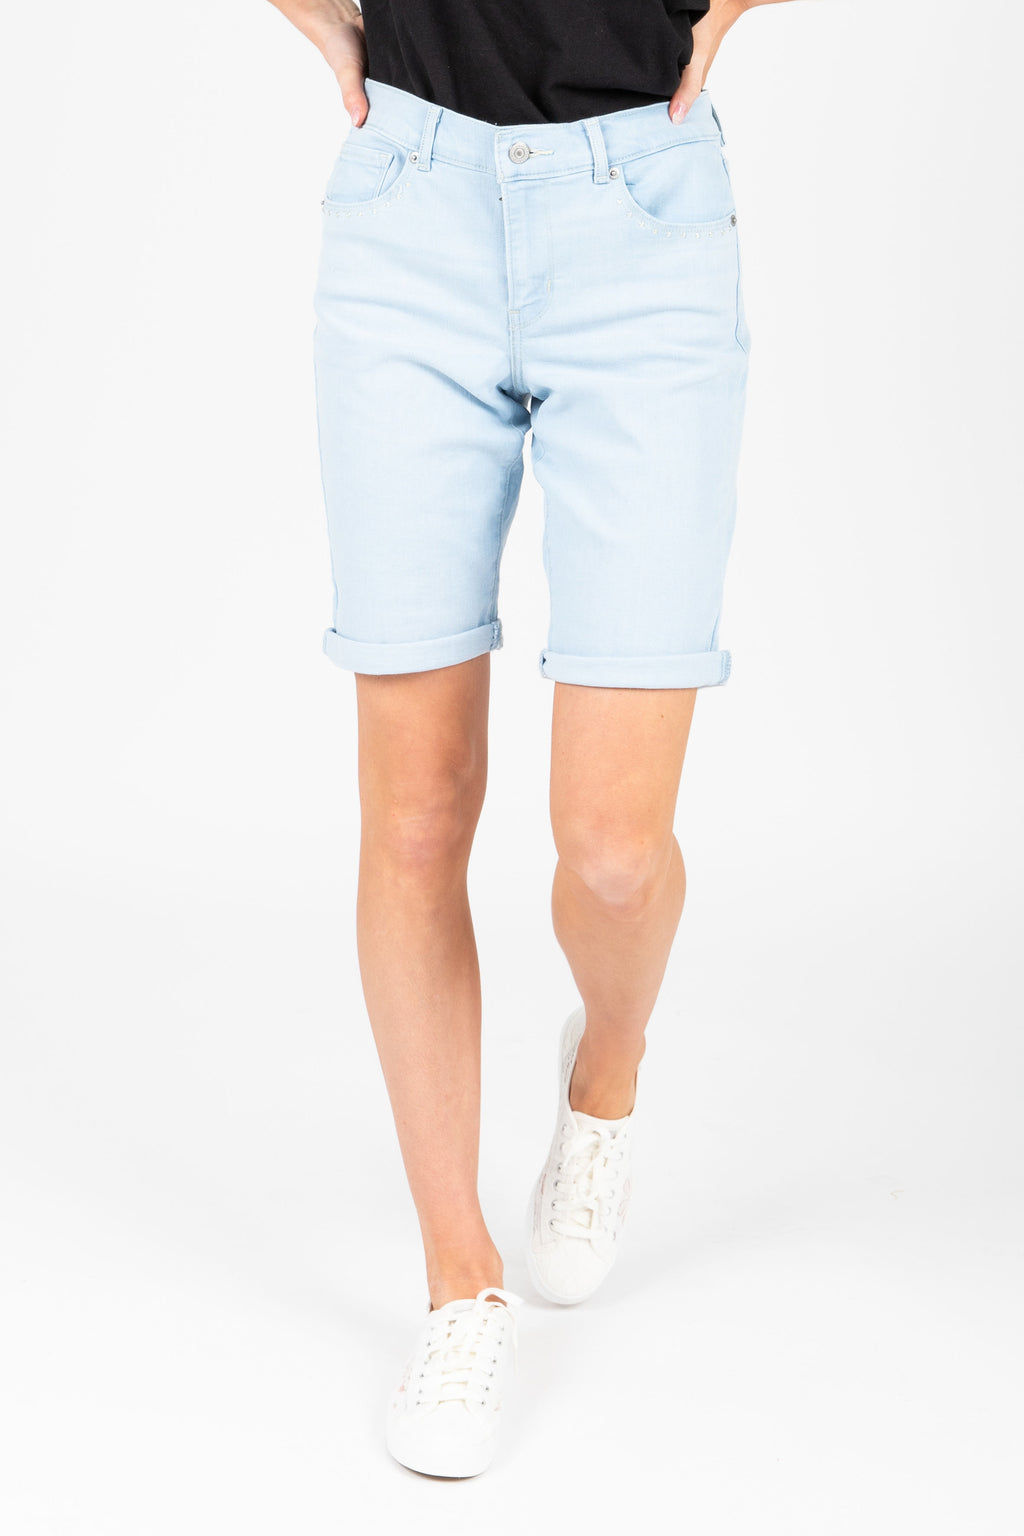 Levi's: Bermuda Short in Light Wash Rivet